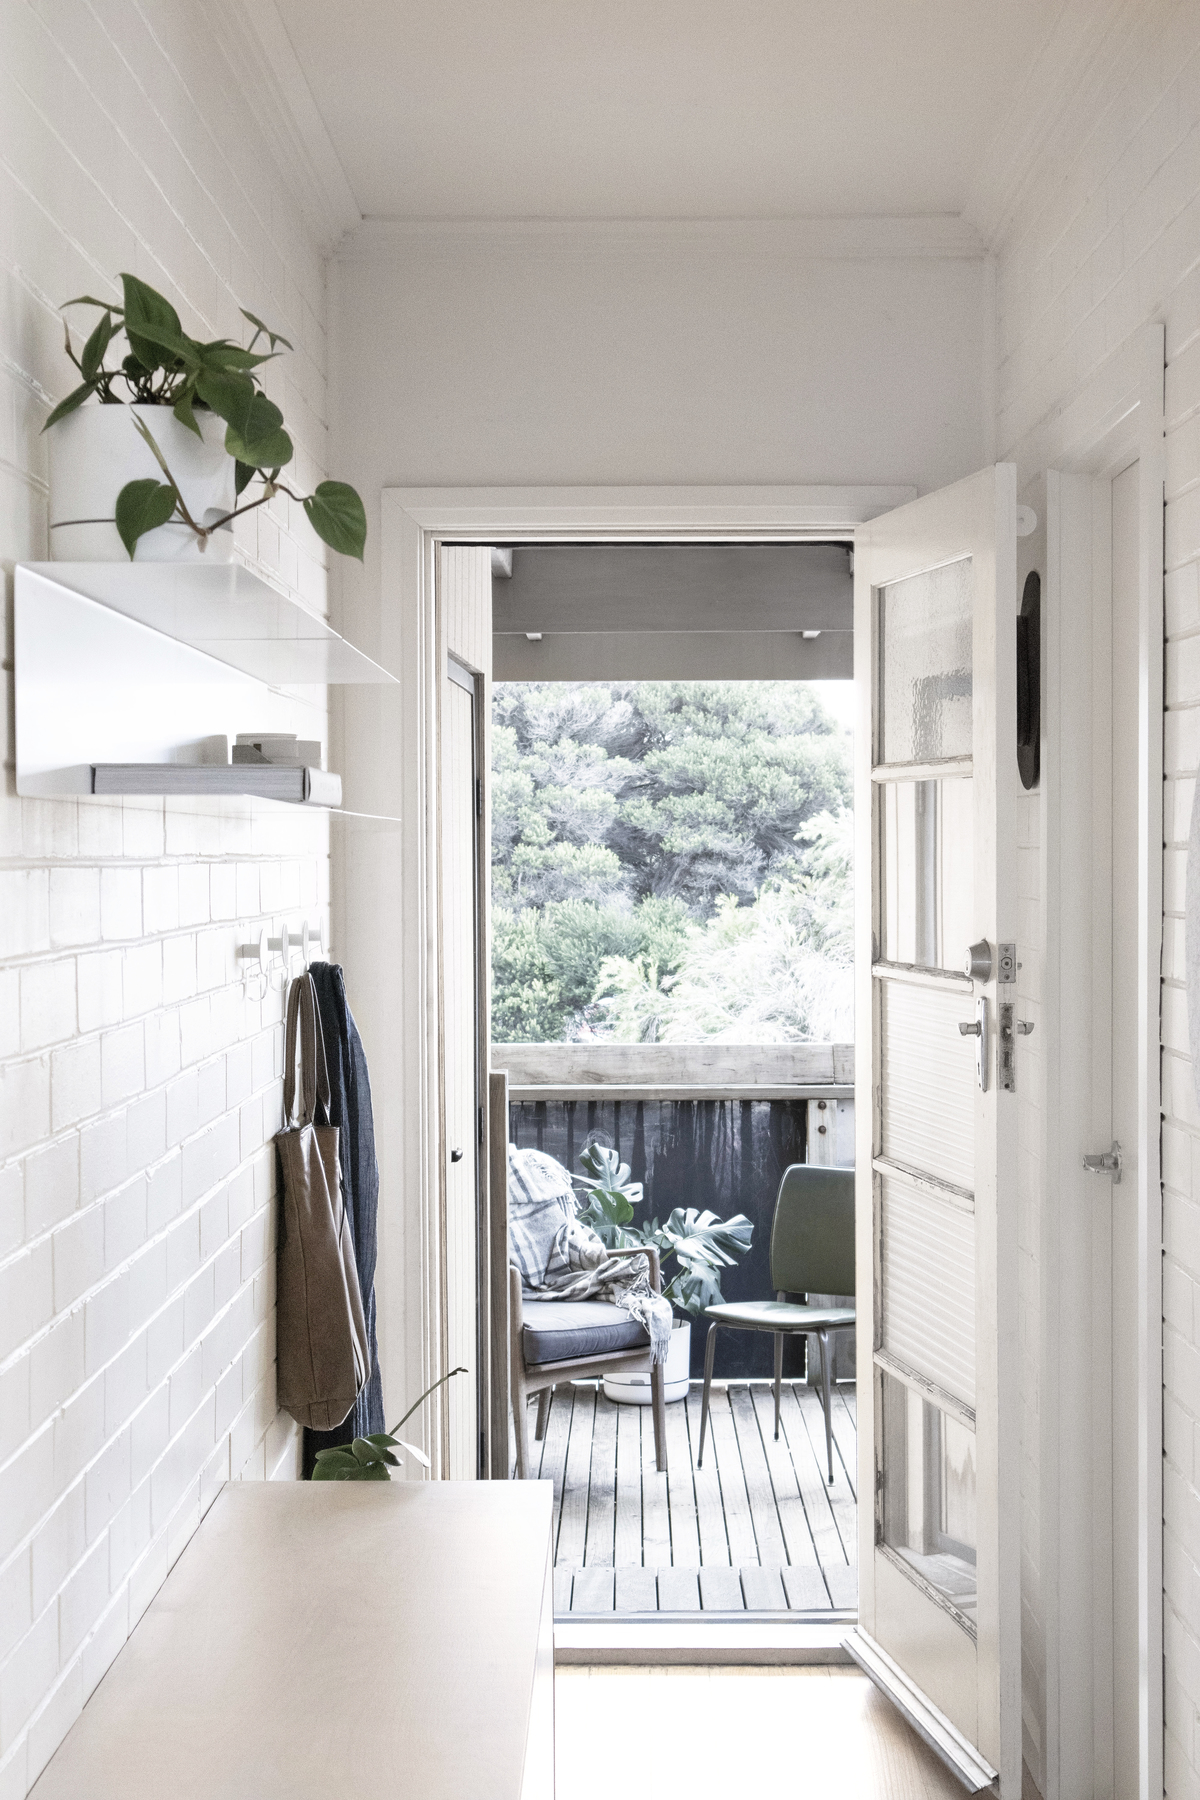 Torquay Compartment Apartment | Winter Architecture | Photographer: Jack Mounsey, Jean Graham & James Embry